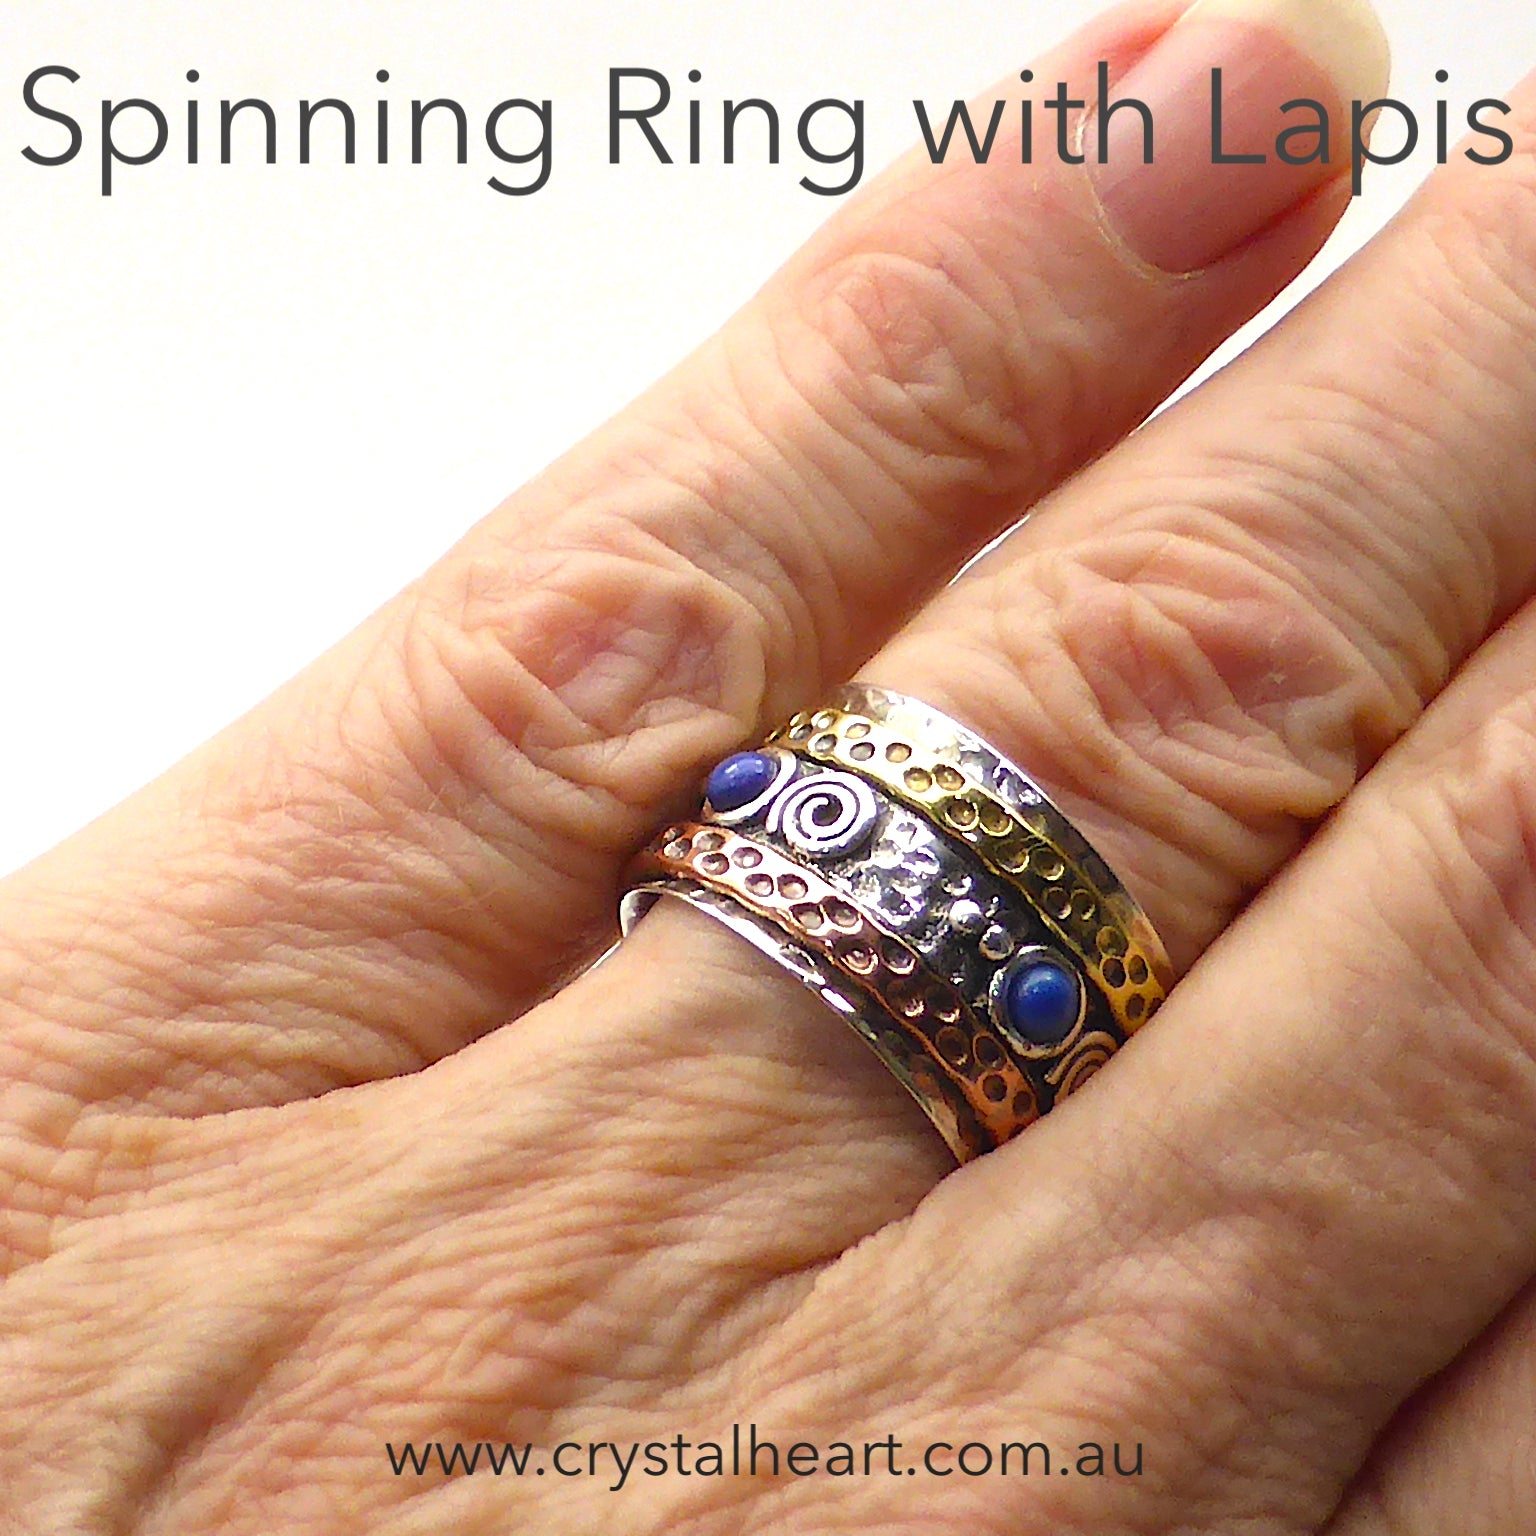 Lapis Lazuli Spinner Ring | 925 Sterling Silver | Textured surfaces | 3 Tones | Silver Copper and gold plate | 4 small Lapis Lazuli Cabs | Crystal Heart Melbourne Australia since 1986